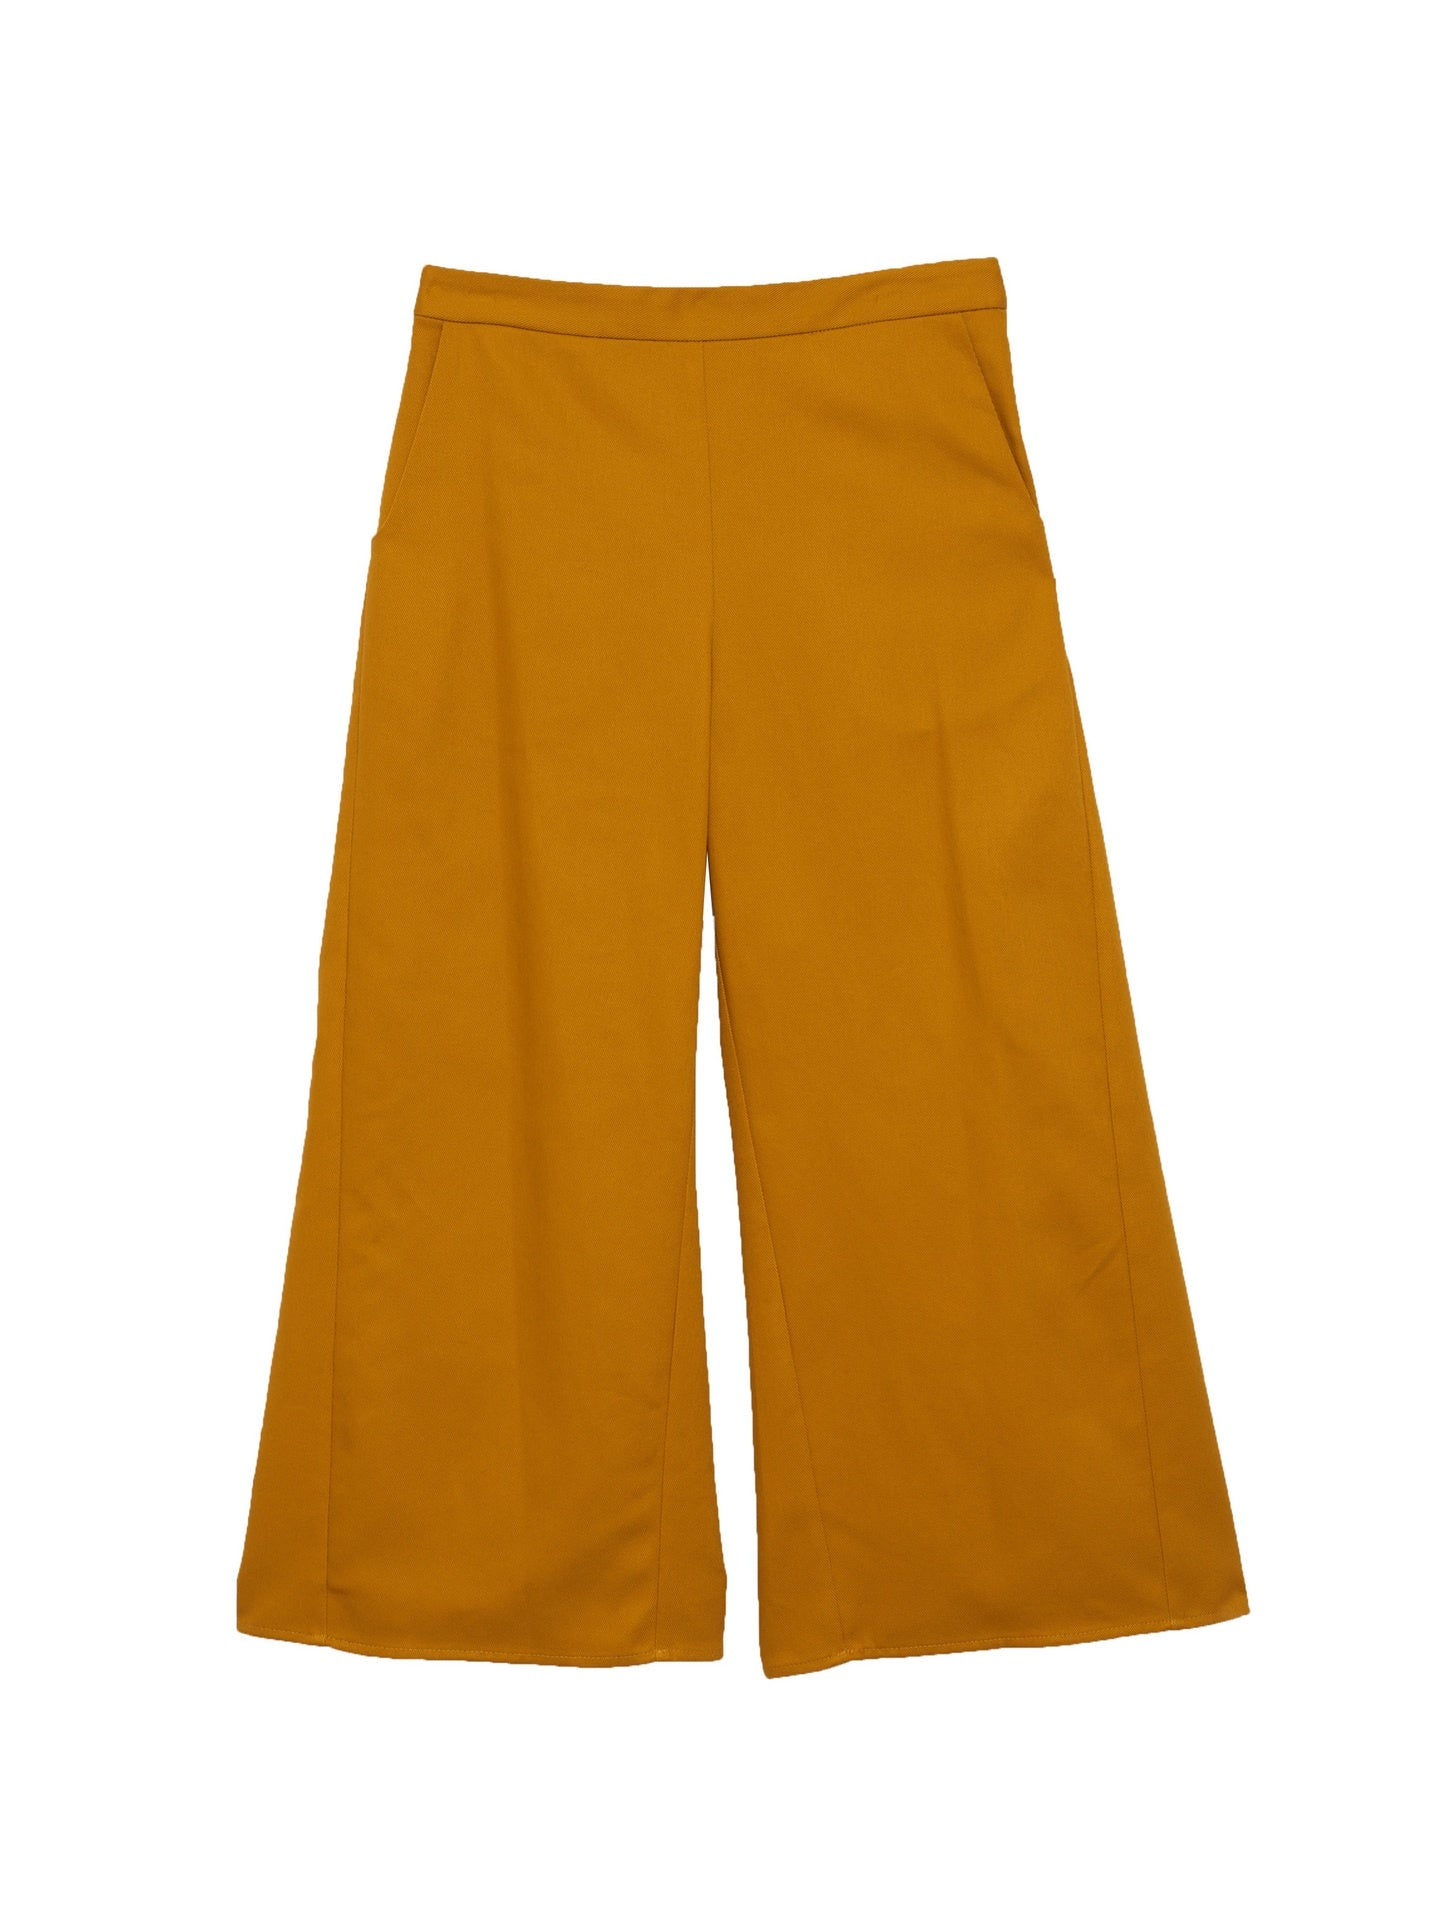 Lisle Pants / Yellow Twill